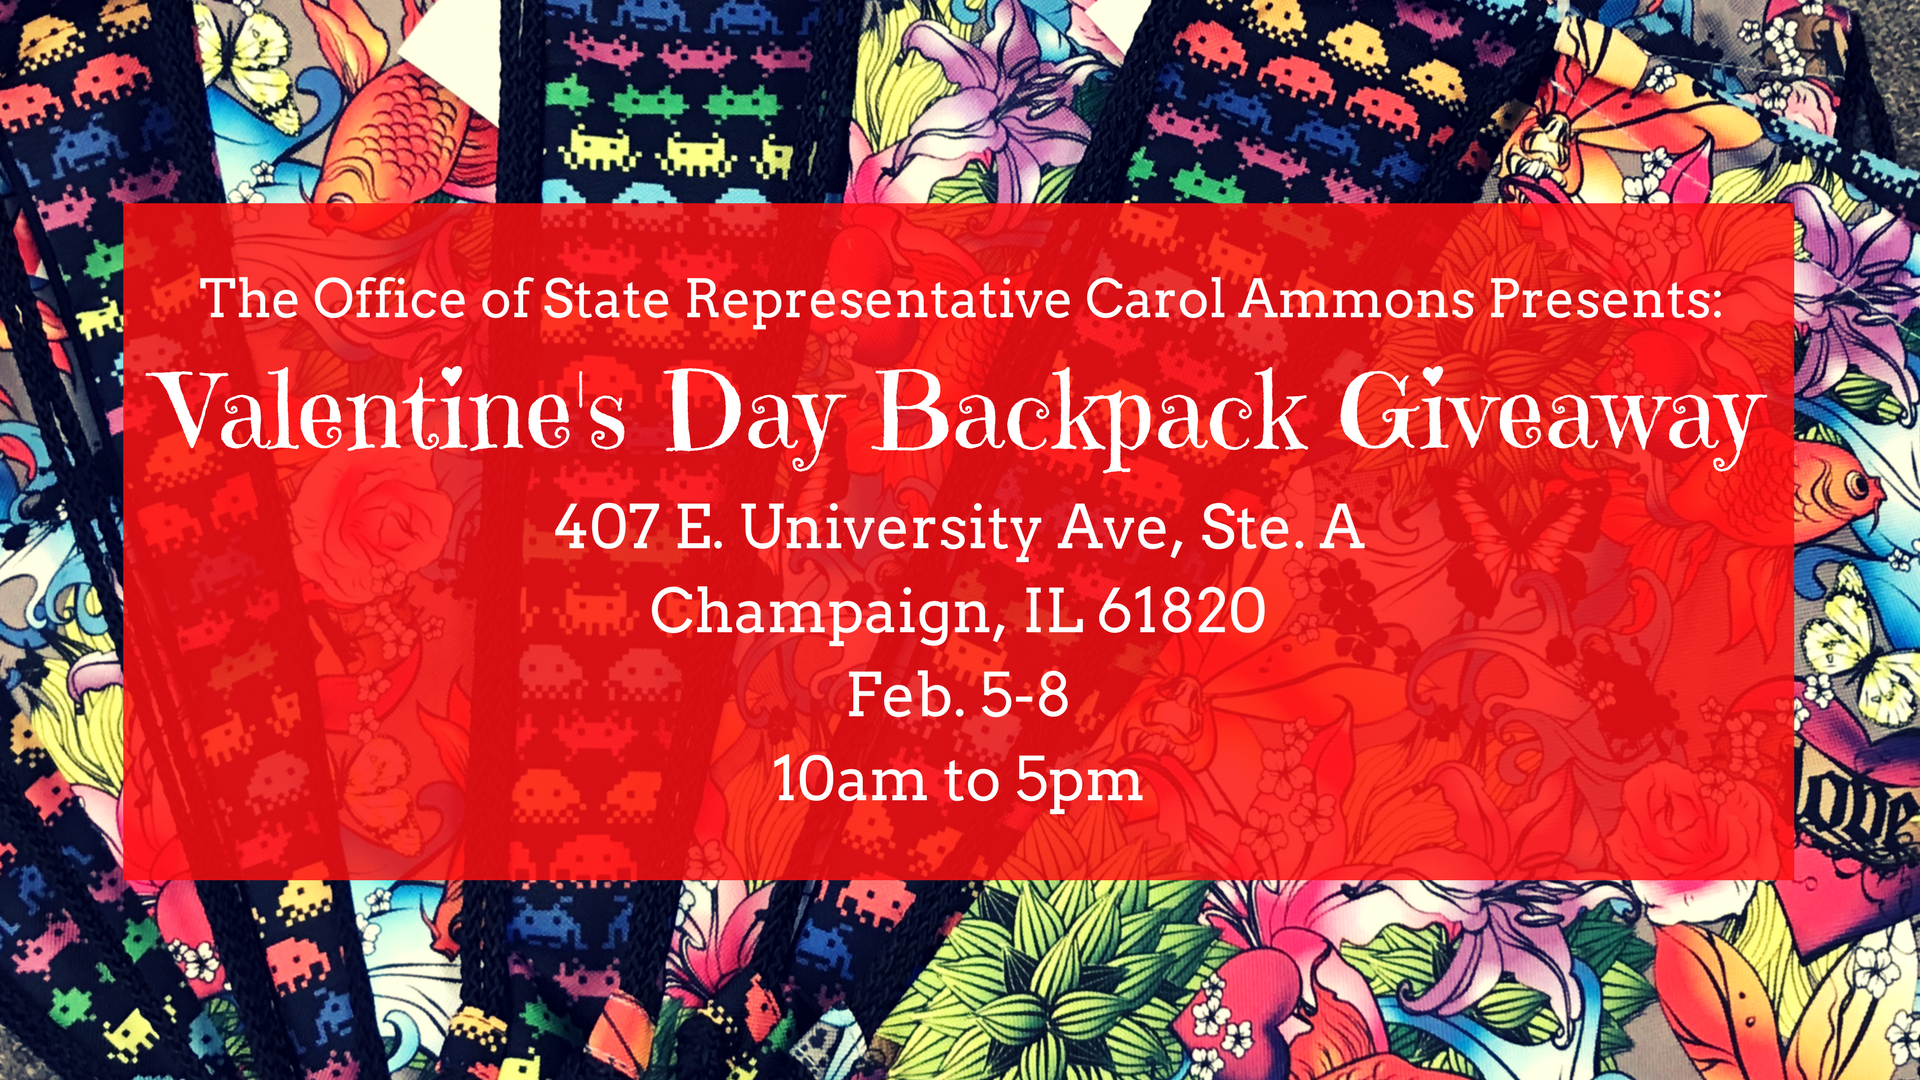 Backpack Giveaway Facebook Cover Photo (1).png